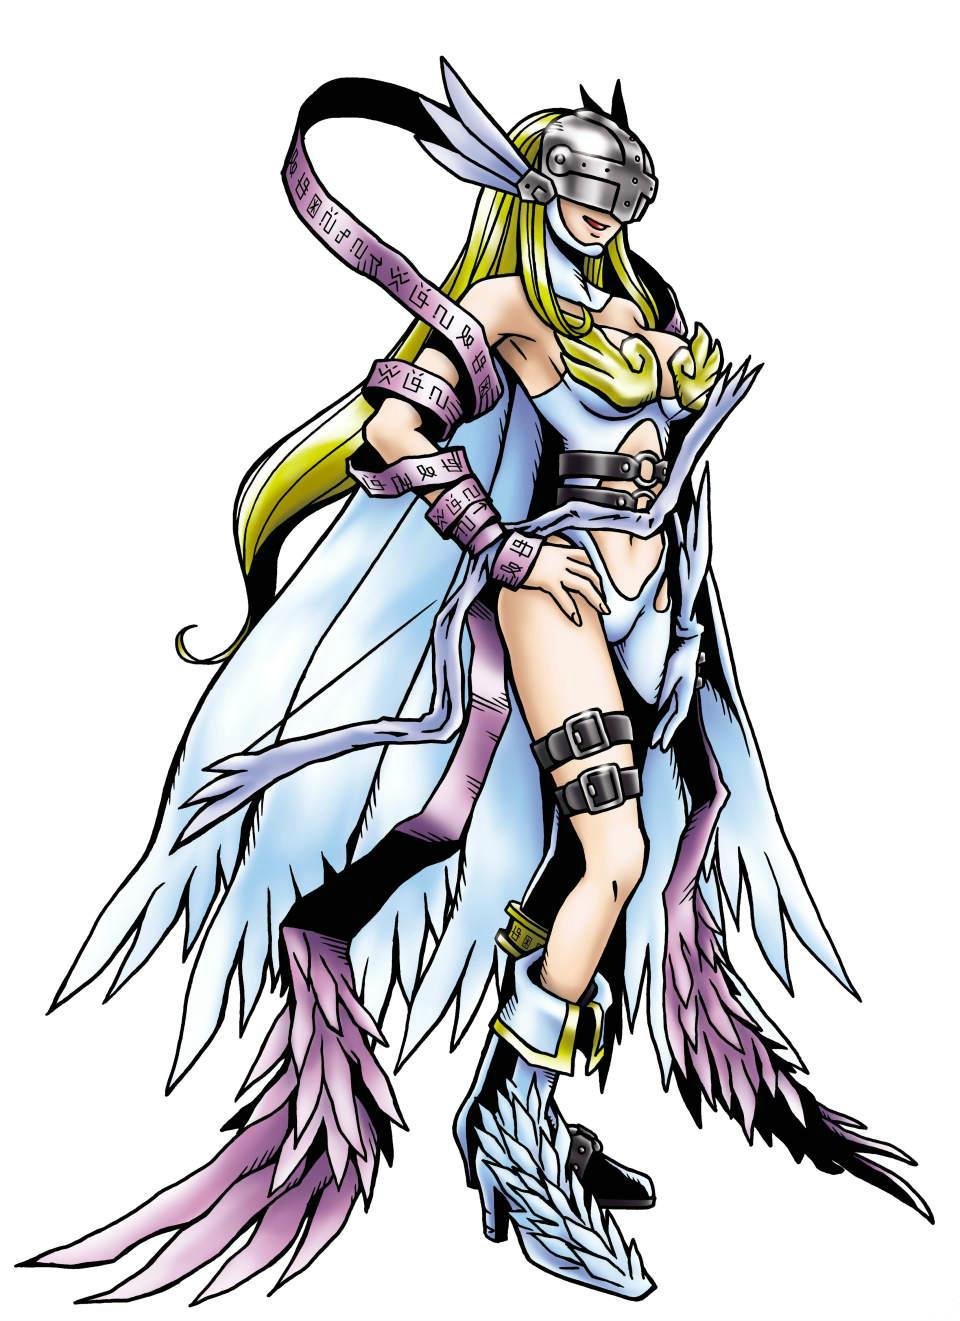 Angewomon | DigimonWiki | Fandom powered by Wikia: http://digimon.wikia.com/wiki/Angewomon